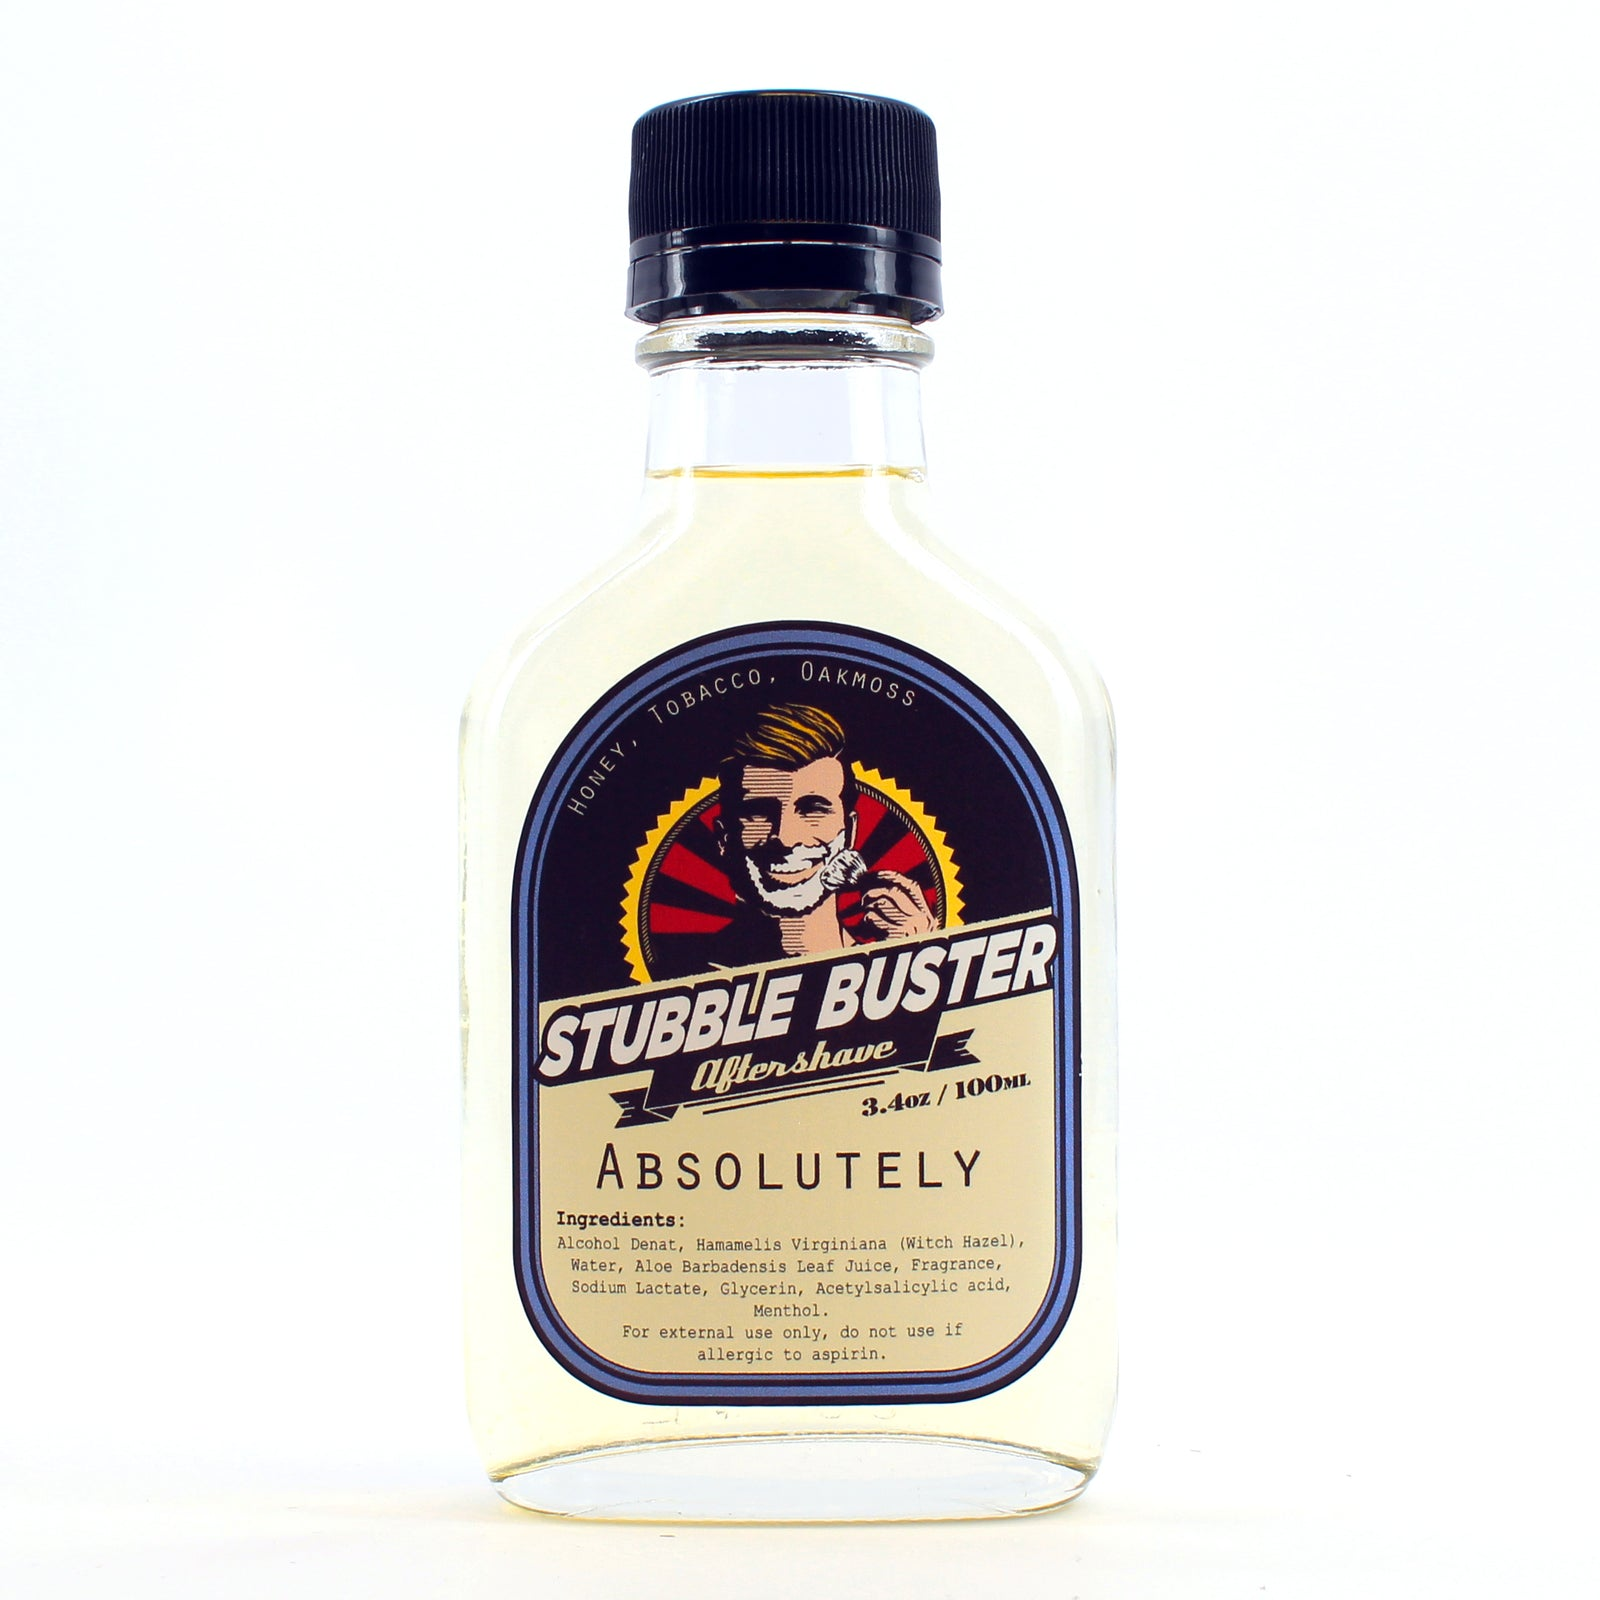 Stubble Buster - Absolutely - Handmade Aftershave Splash